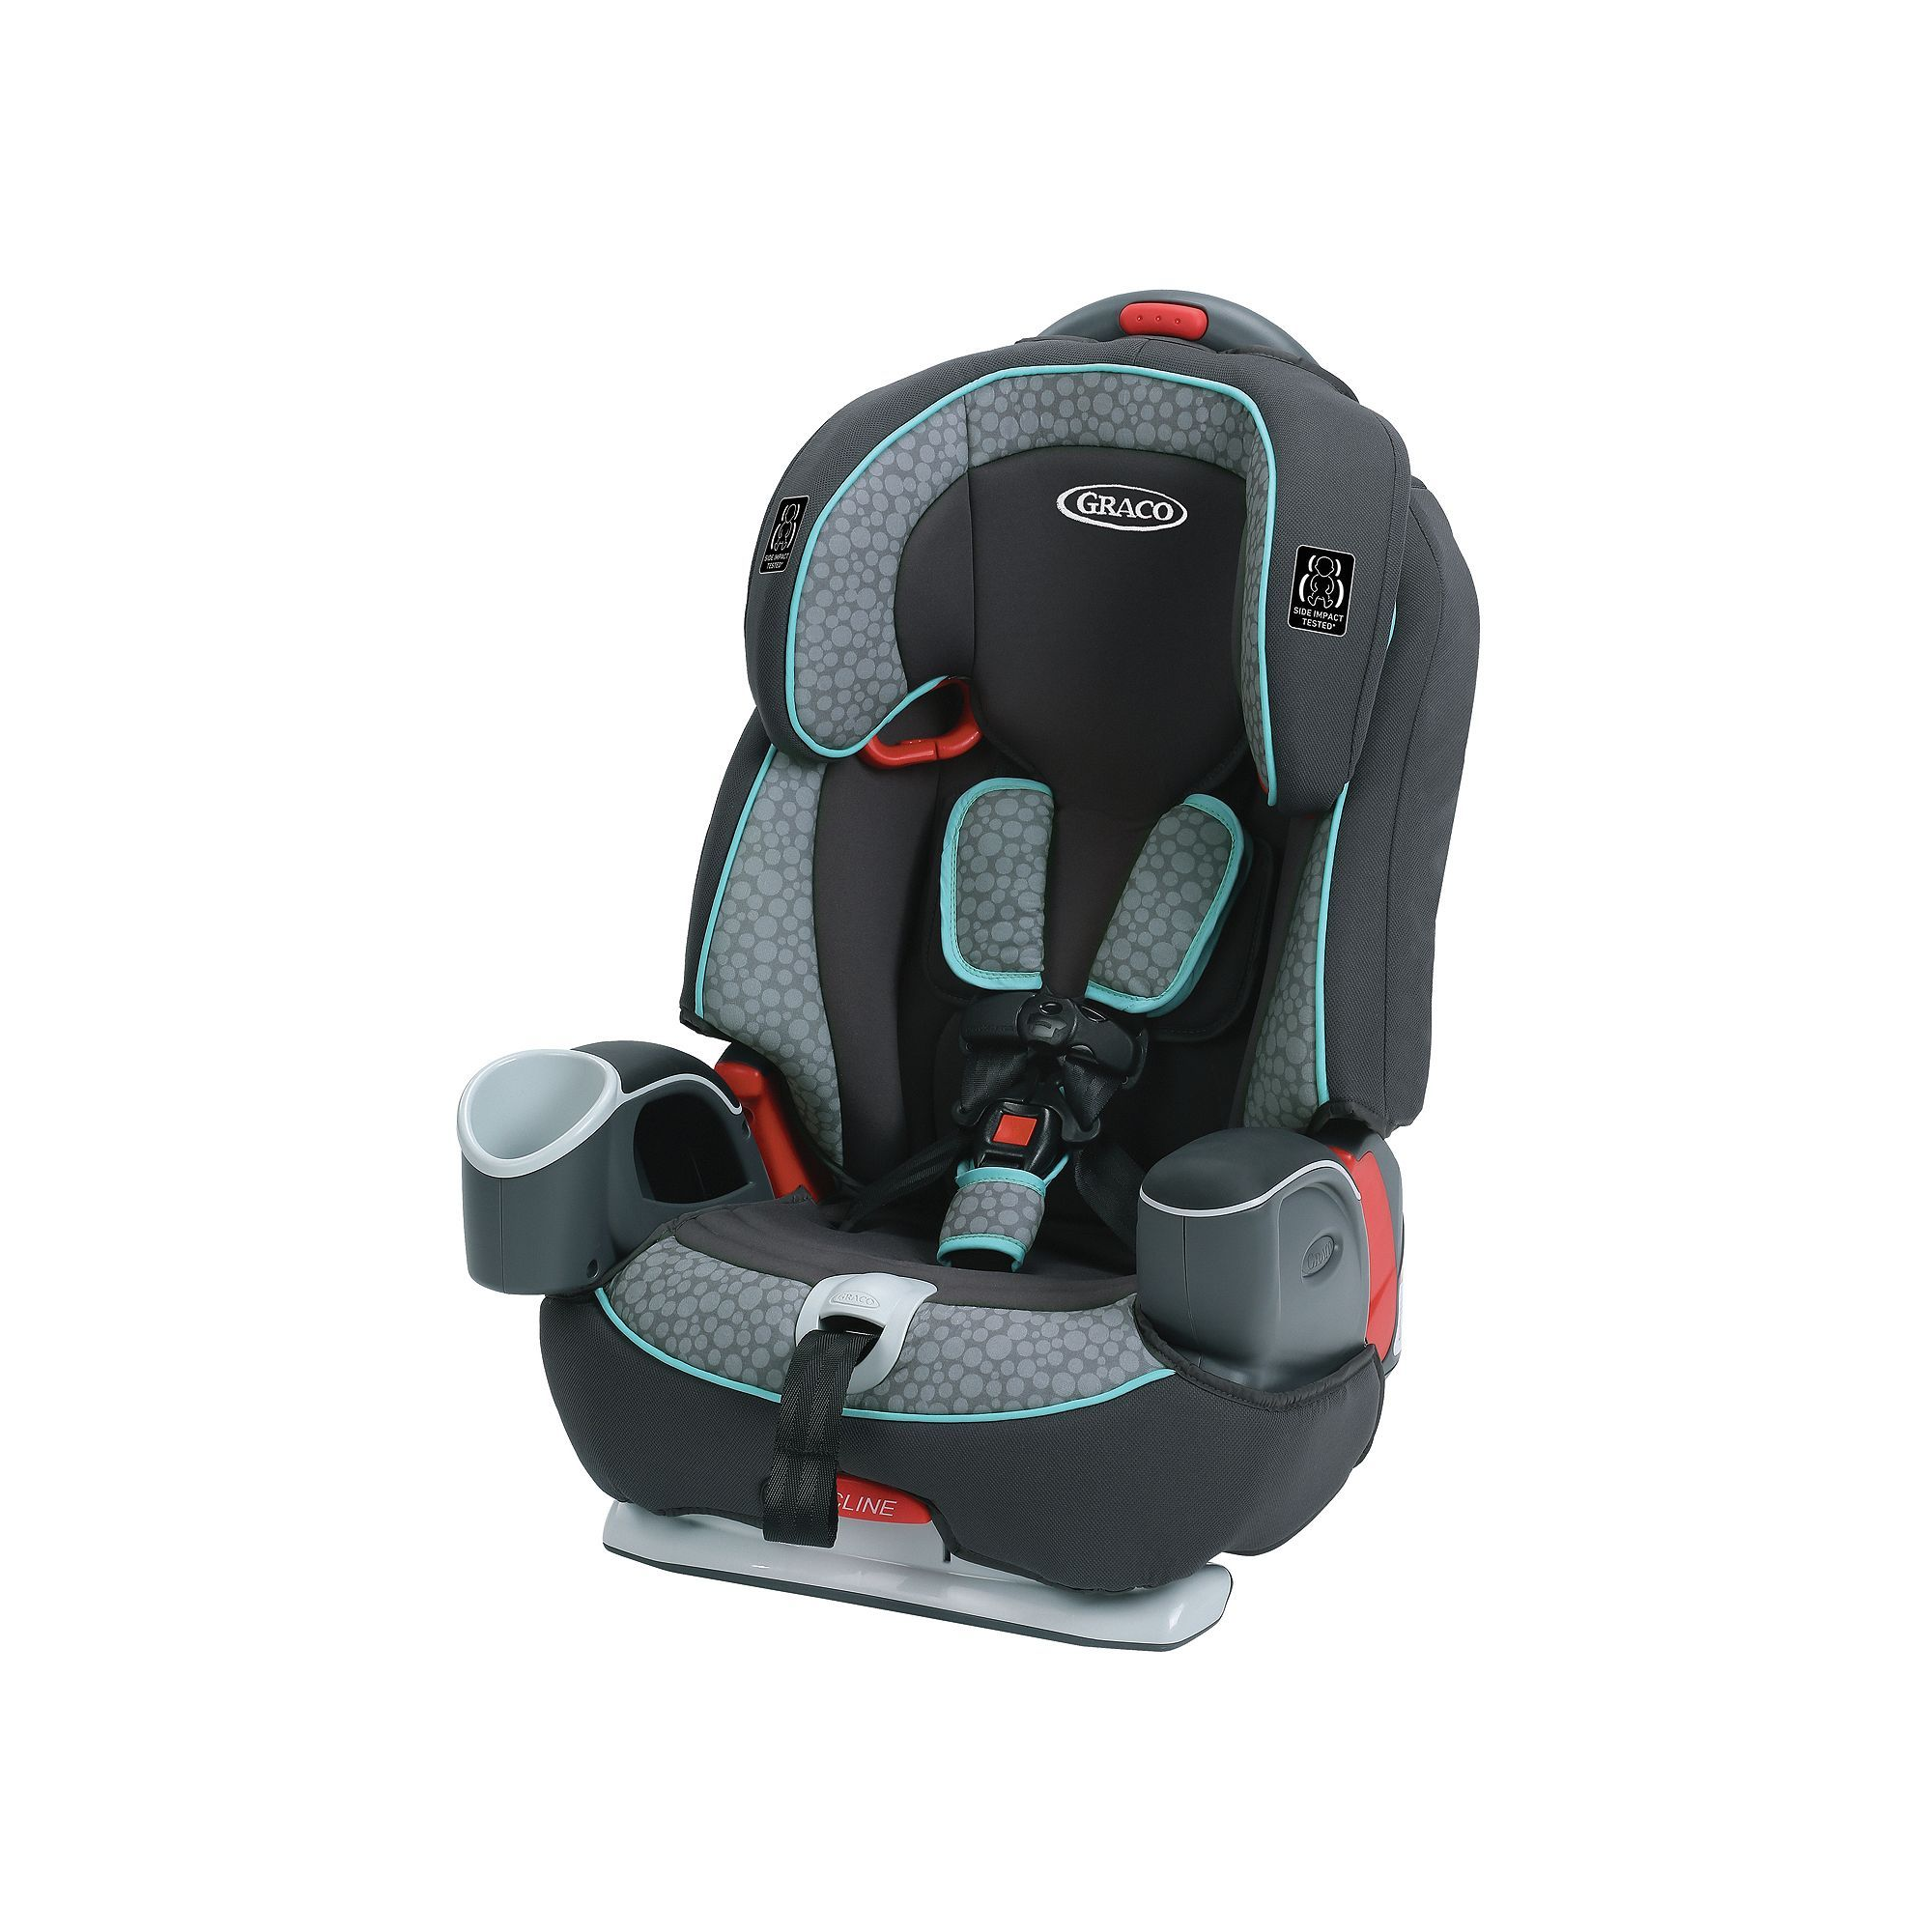 Graco Nautilus 65 3-in-1 Harness Booster Car Seat | Products ...